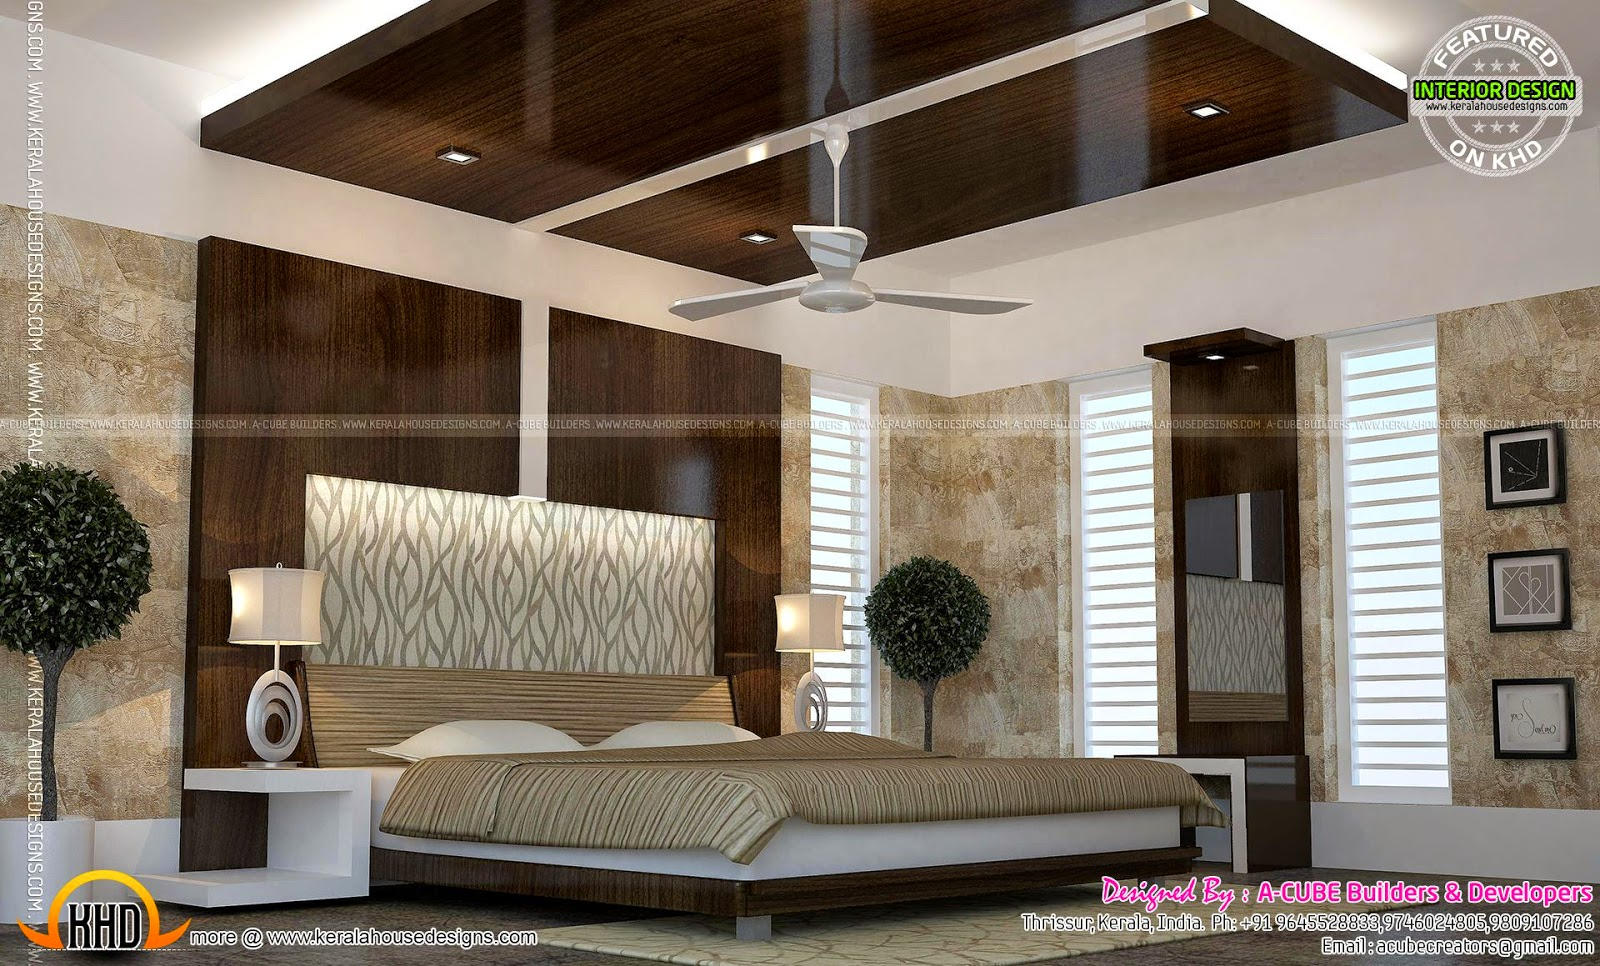 Kerala interior design ideas kerala home design and How to design your house interior